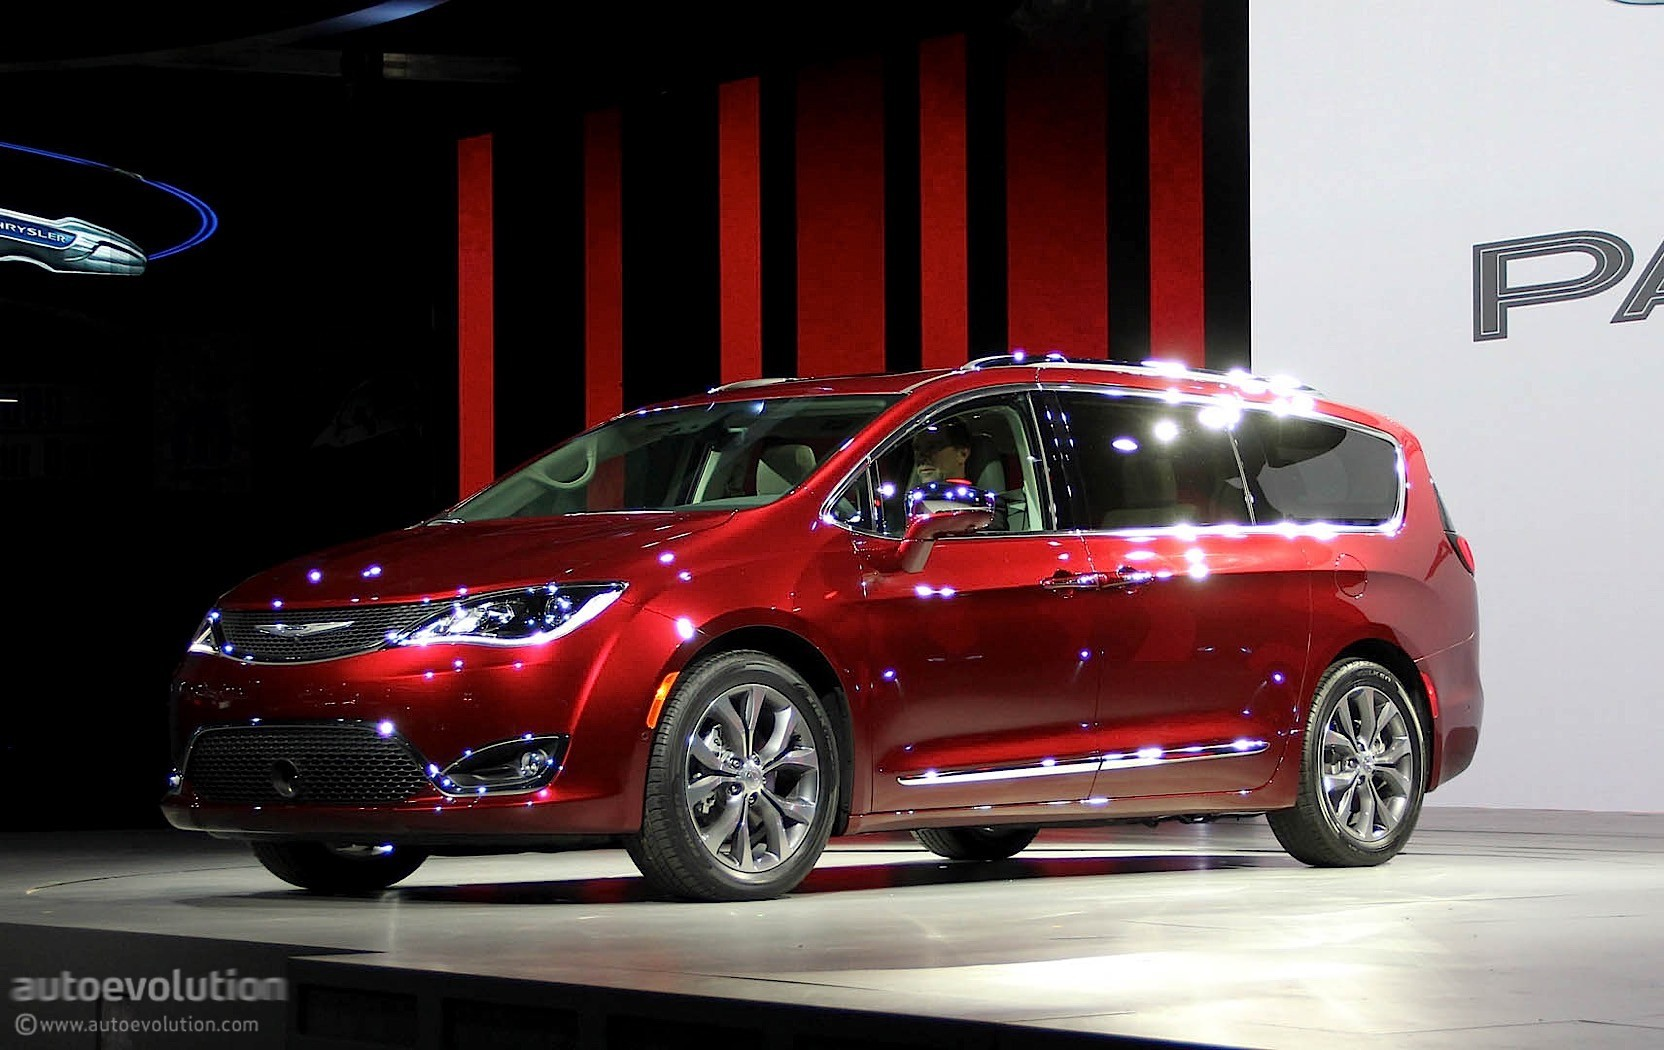 2017 Chrysler Pacifica Is En Route to a Dealership Near You ...